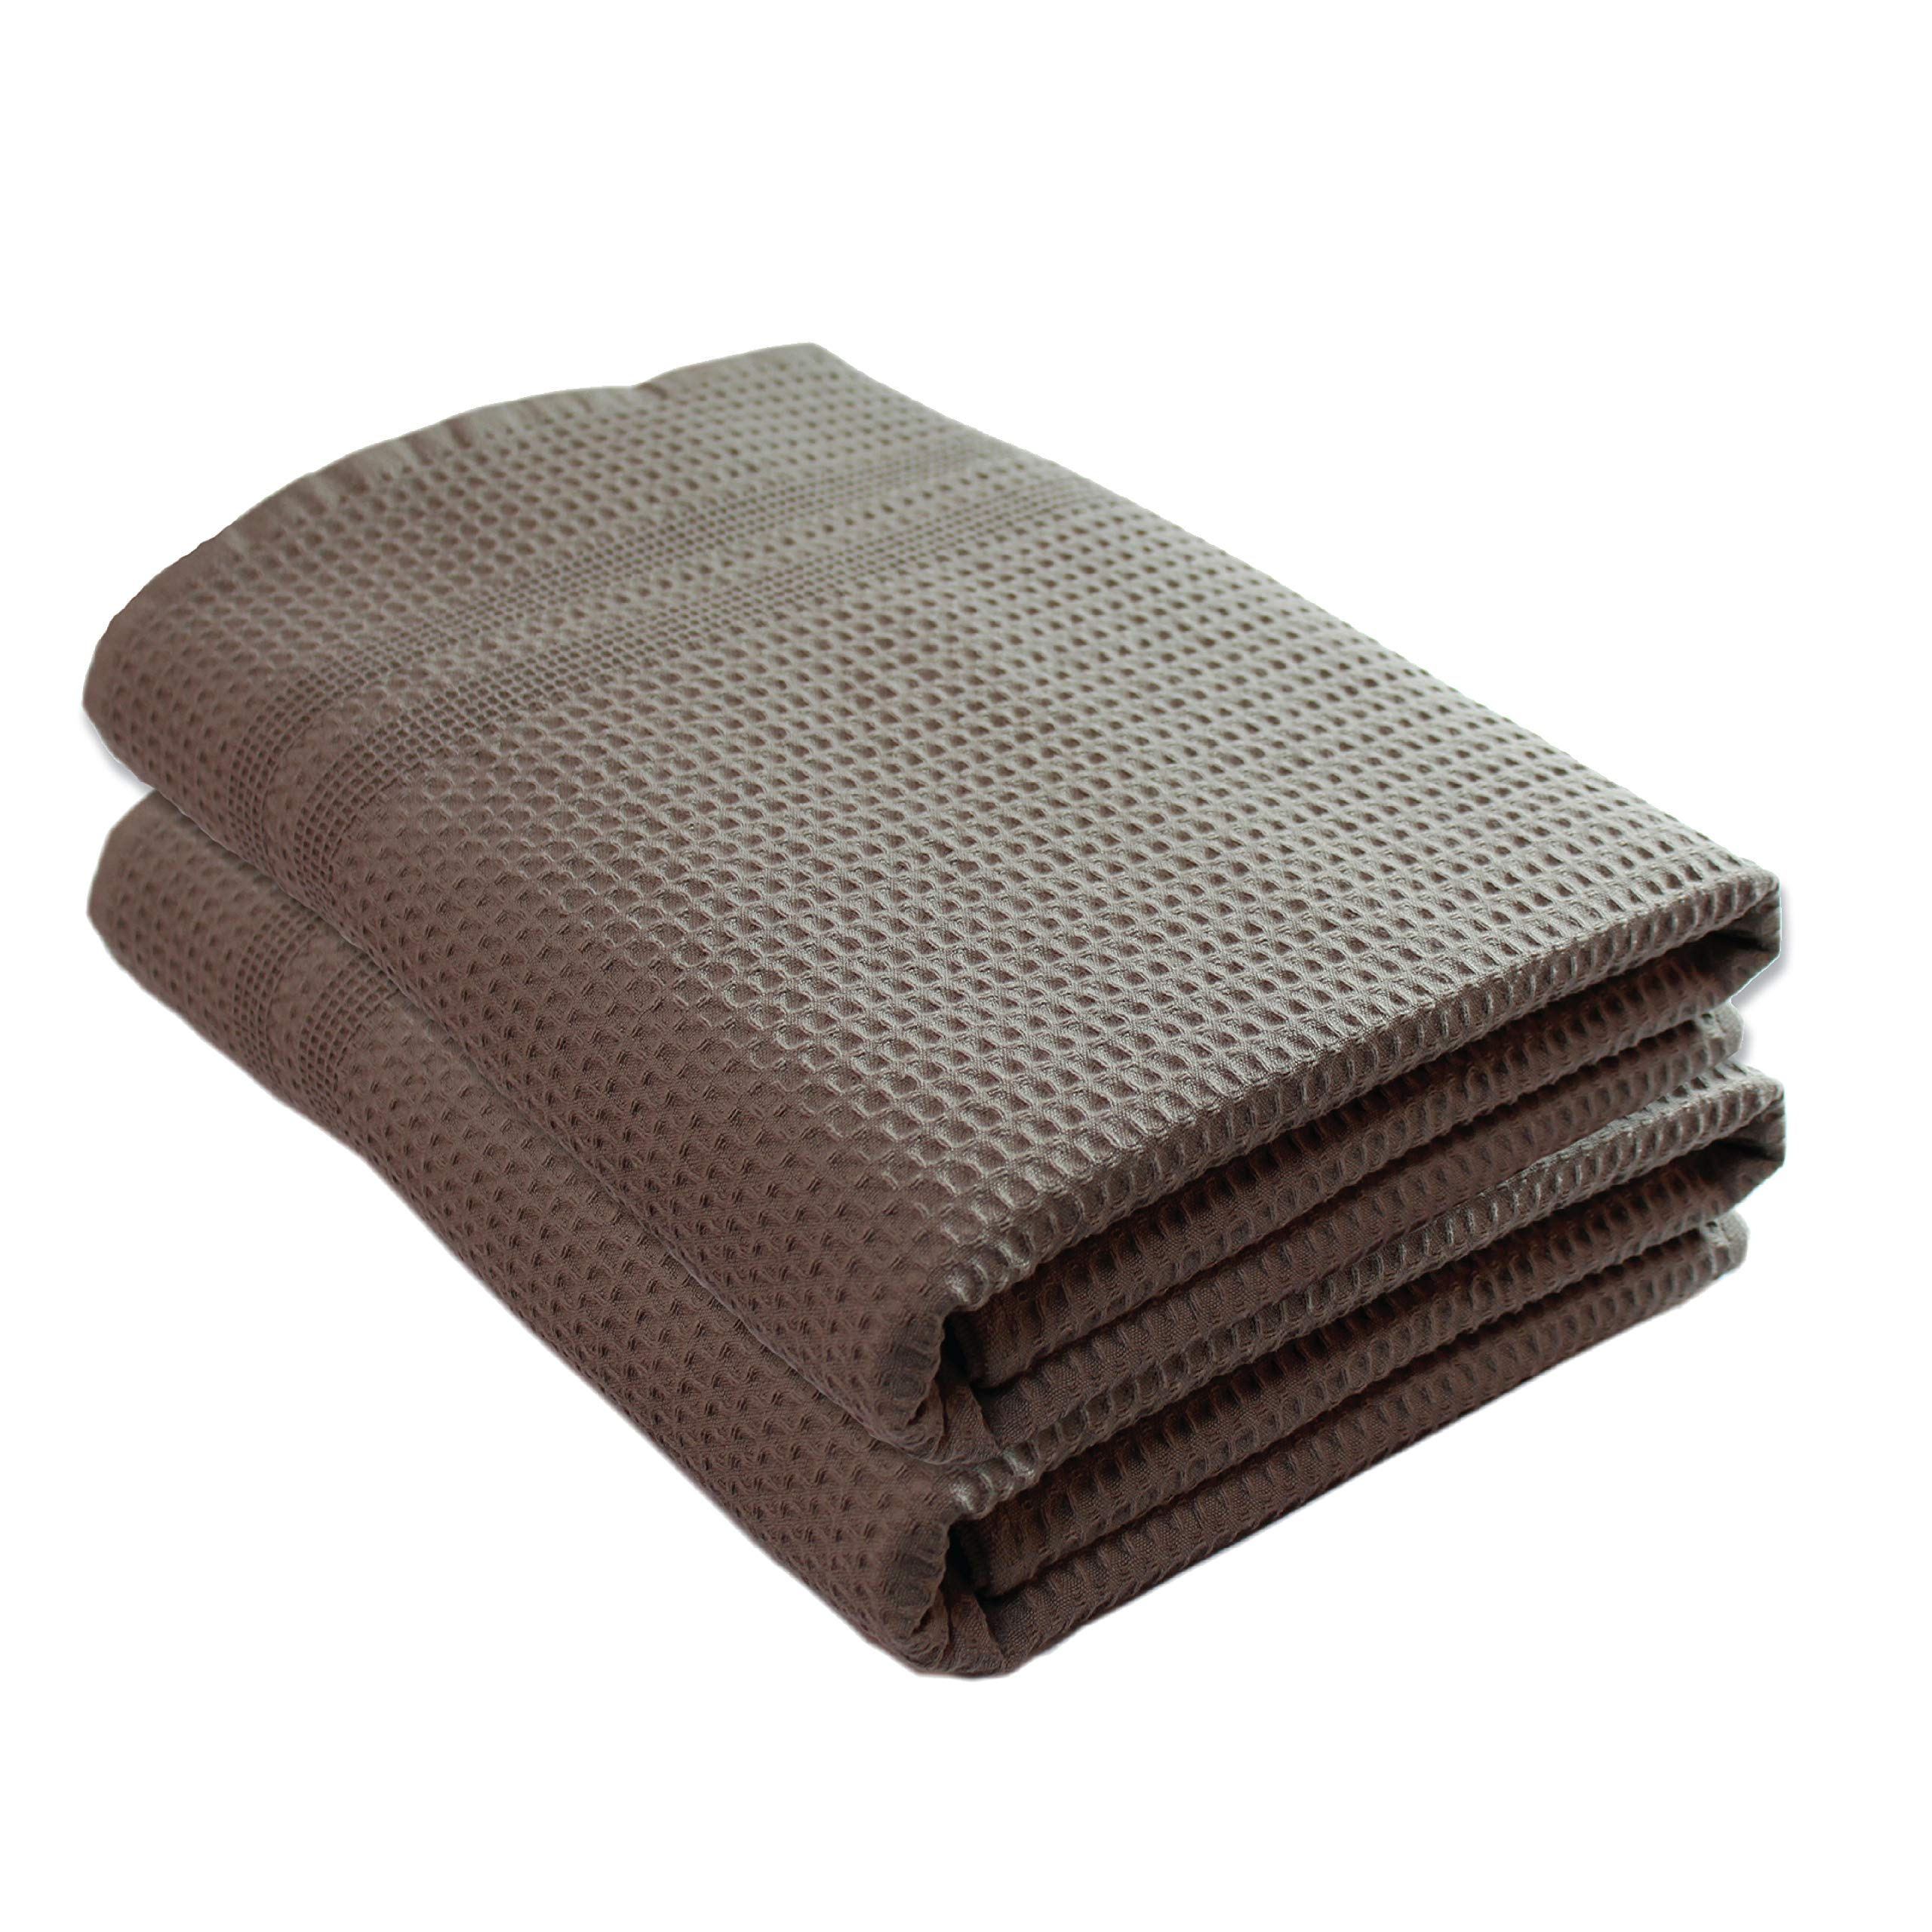 Gilden Tree Premium Bath Towels 2 Pc Set 100% Natural Cotton Quick Dry Waffle Weave Lint Free Soft Luxurious Fabric Solid Colors Oversized Thin Cloth Fade Resistant (Stone)